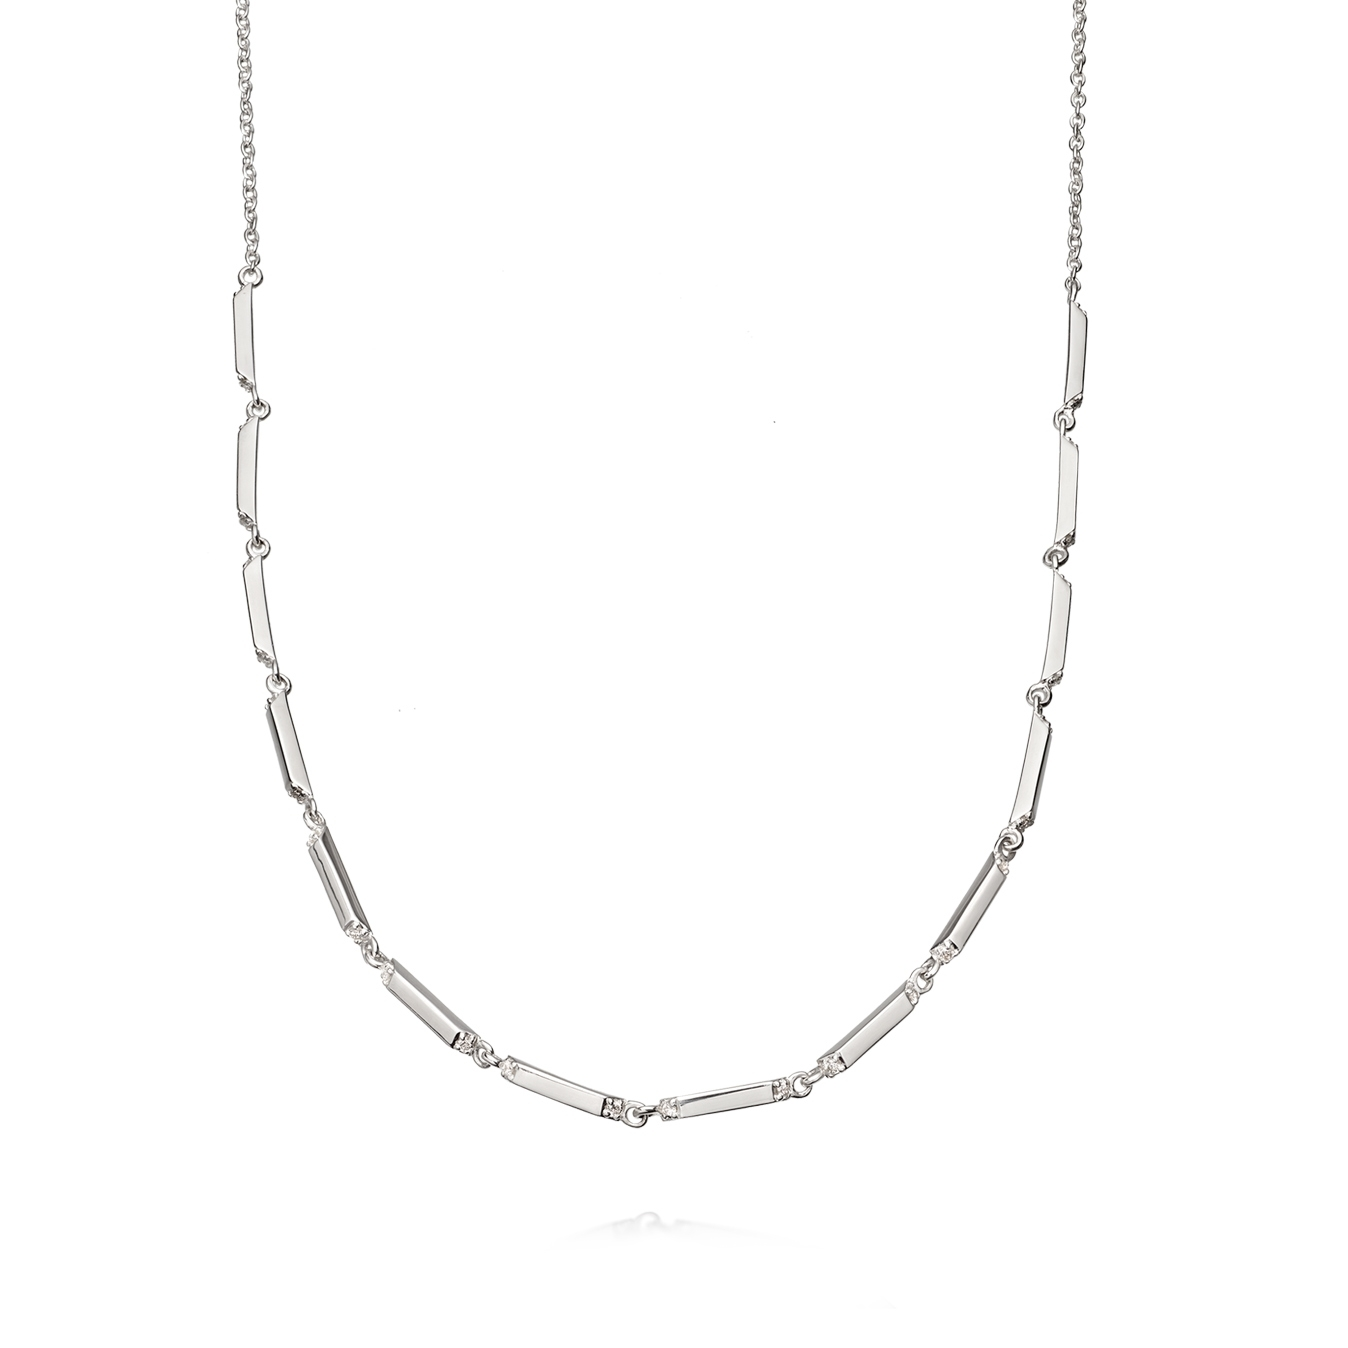 Aubar Diamond Necklace